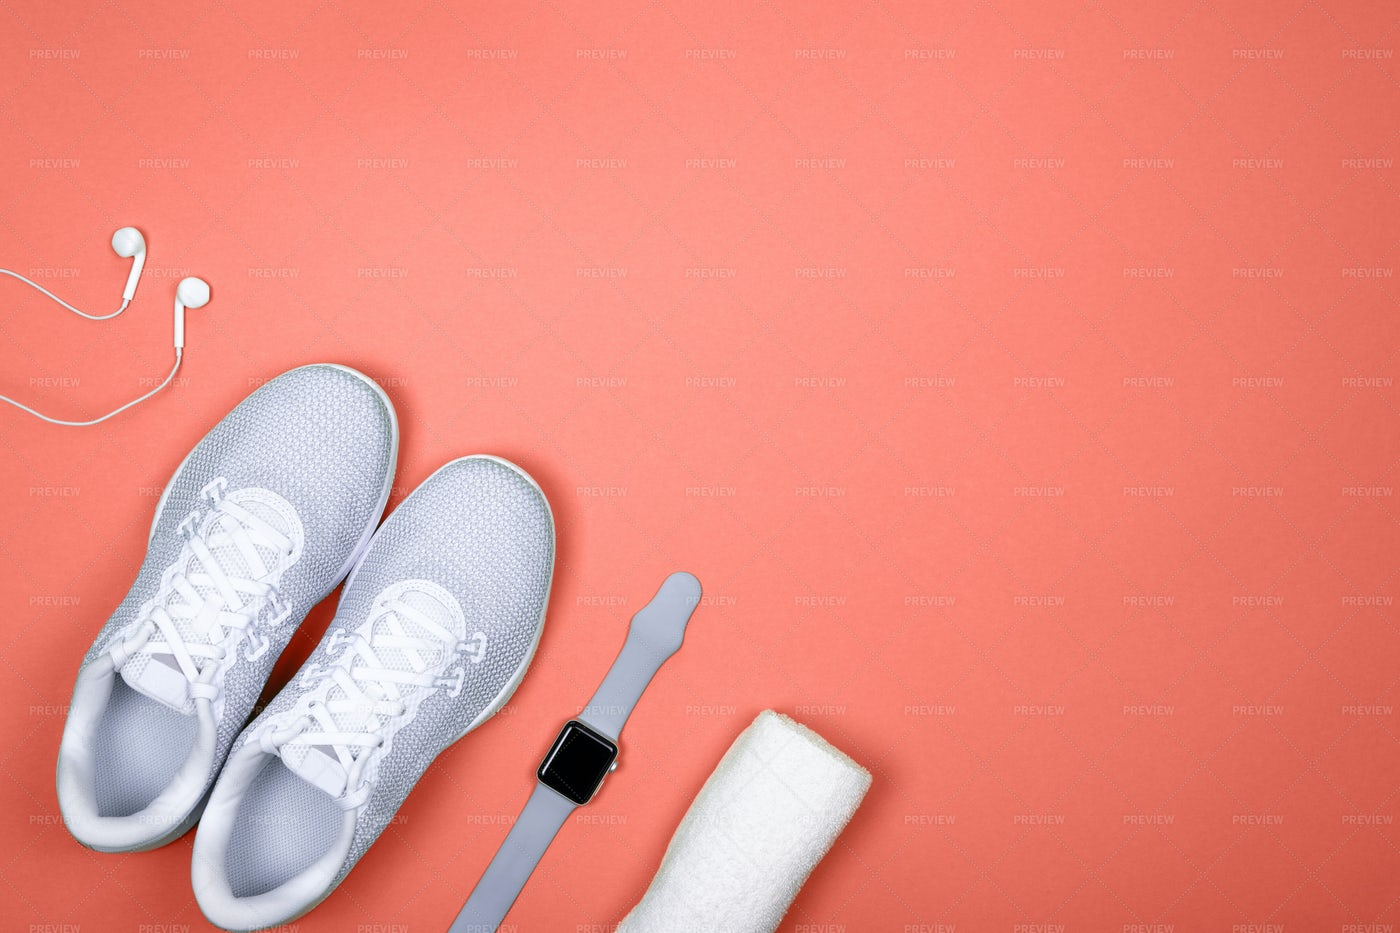 Shoes And Sport Accessories: Stock Photos